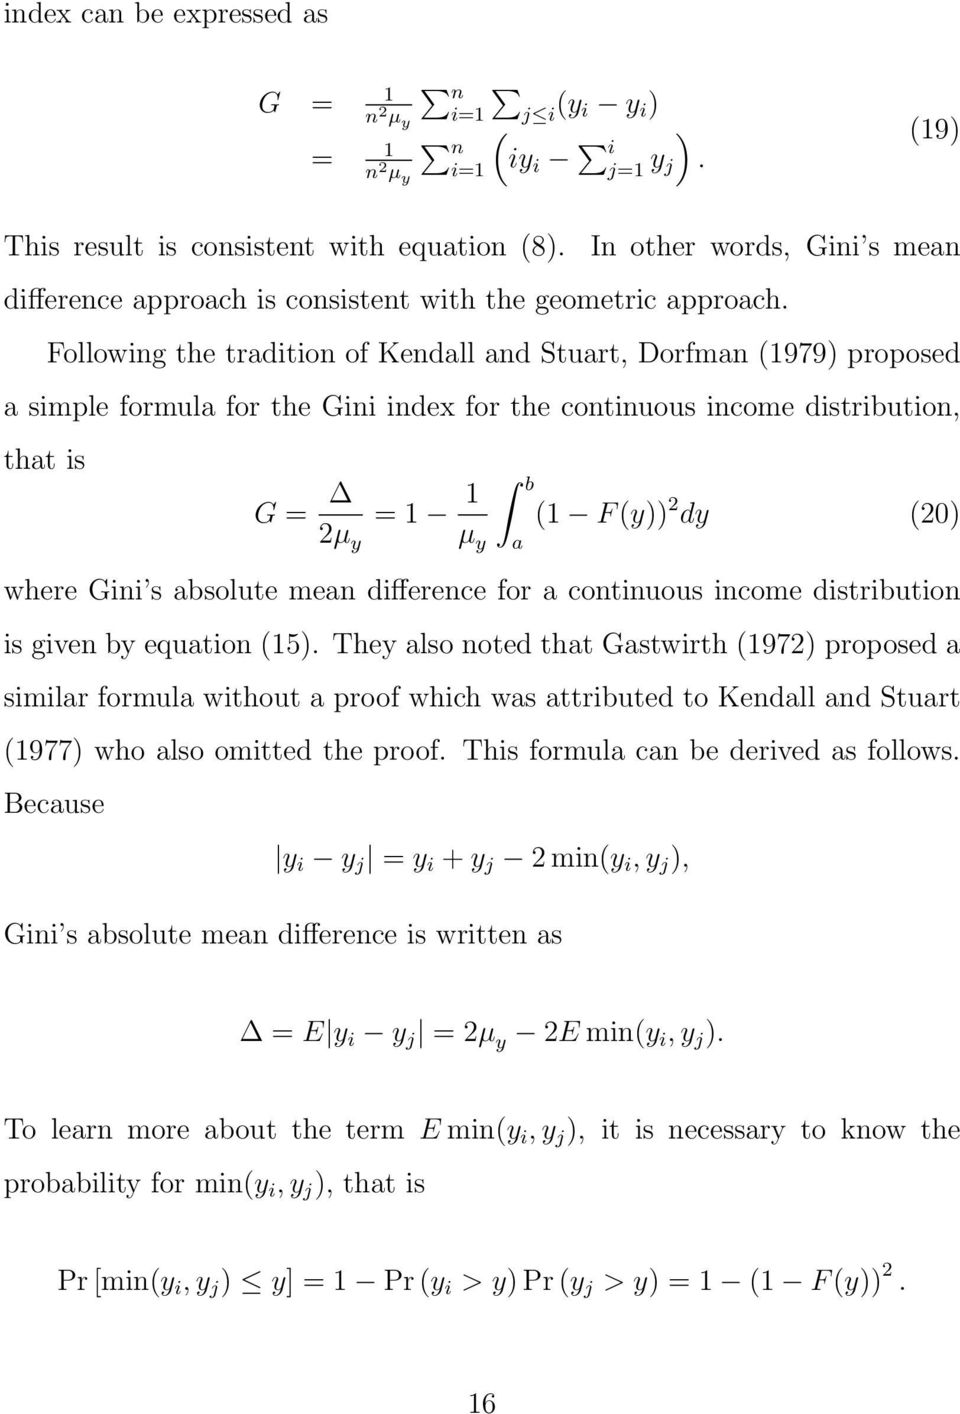 Followig the traditio of Kedall ad Stuart, Dorfma (1979) proposed a simple formula for the Gii idex for the cotiuous icome distributio, that is G = 2µ y = 1 1 µ y b a (1 F (y)) 2 dy (20) where Gii s